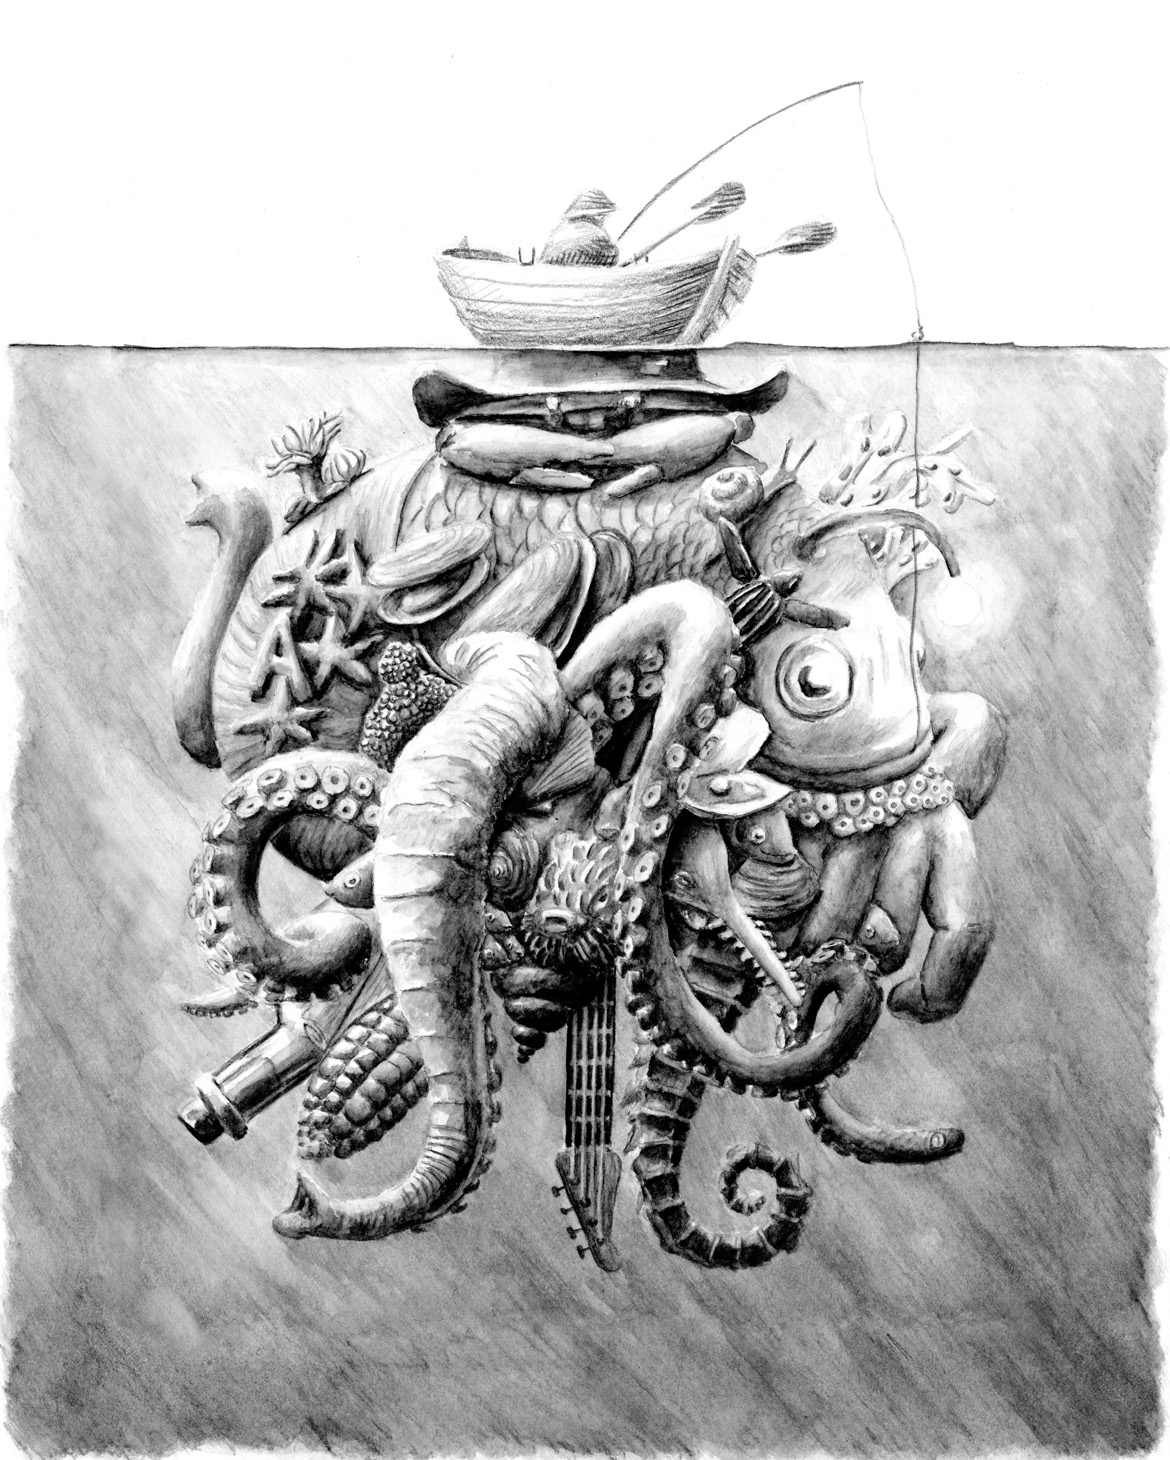 12-Boat-Redmer-Hoekstra-Drawing-Fantastic-and-Surreal-World-of-Hoekstra-www-designstack-co